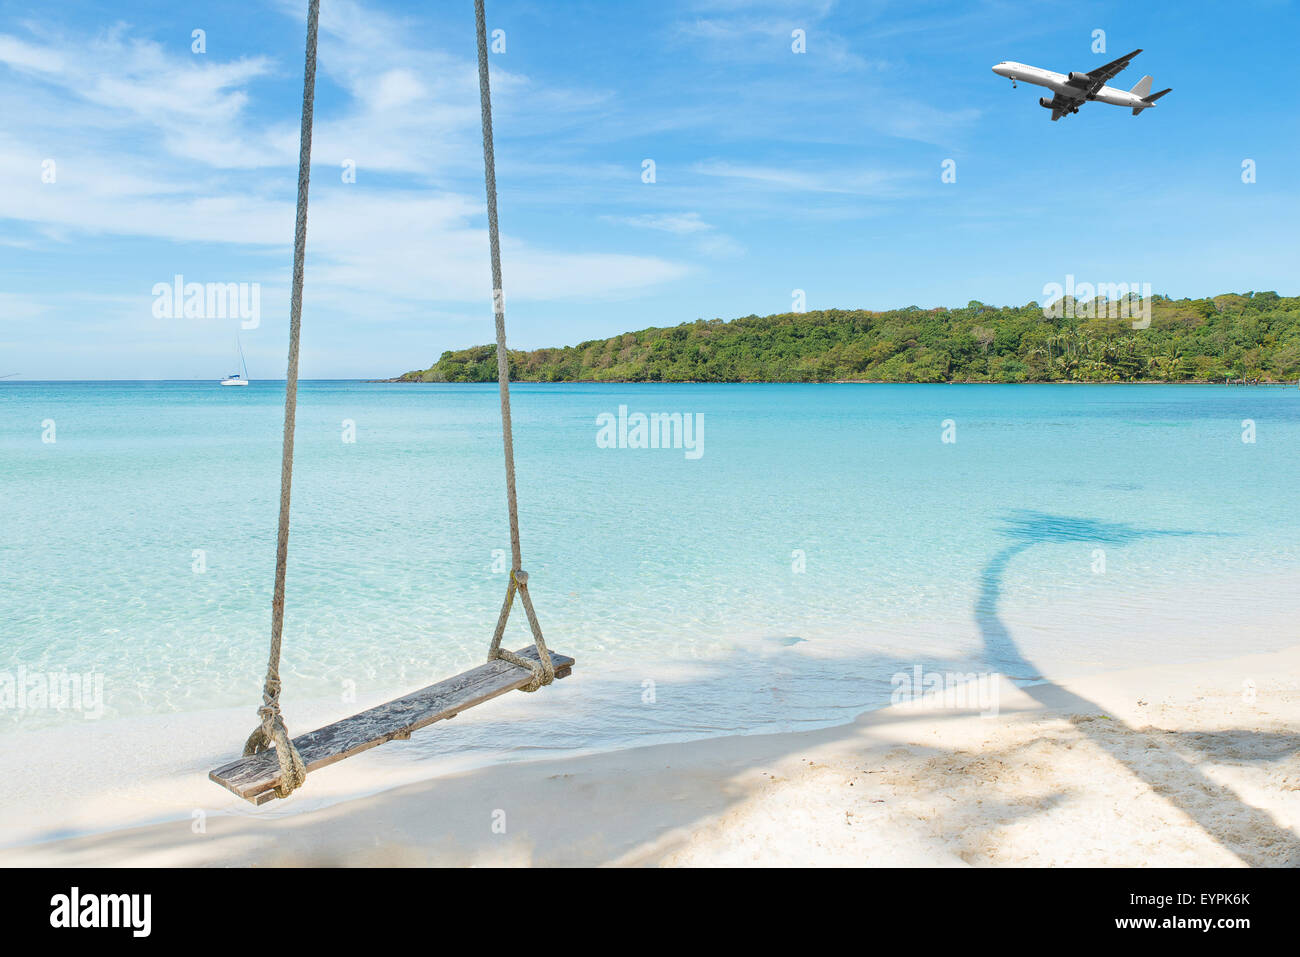 Summer, Travel, Vacation and Holiday concept - Airplane arriving tropical beach sea in Phuket ,Thailand. - Stock Image